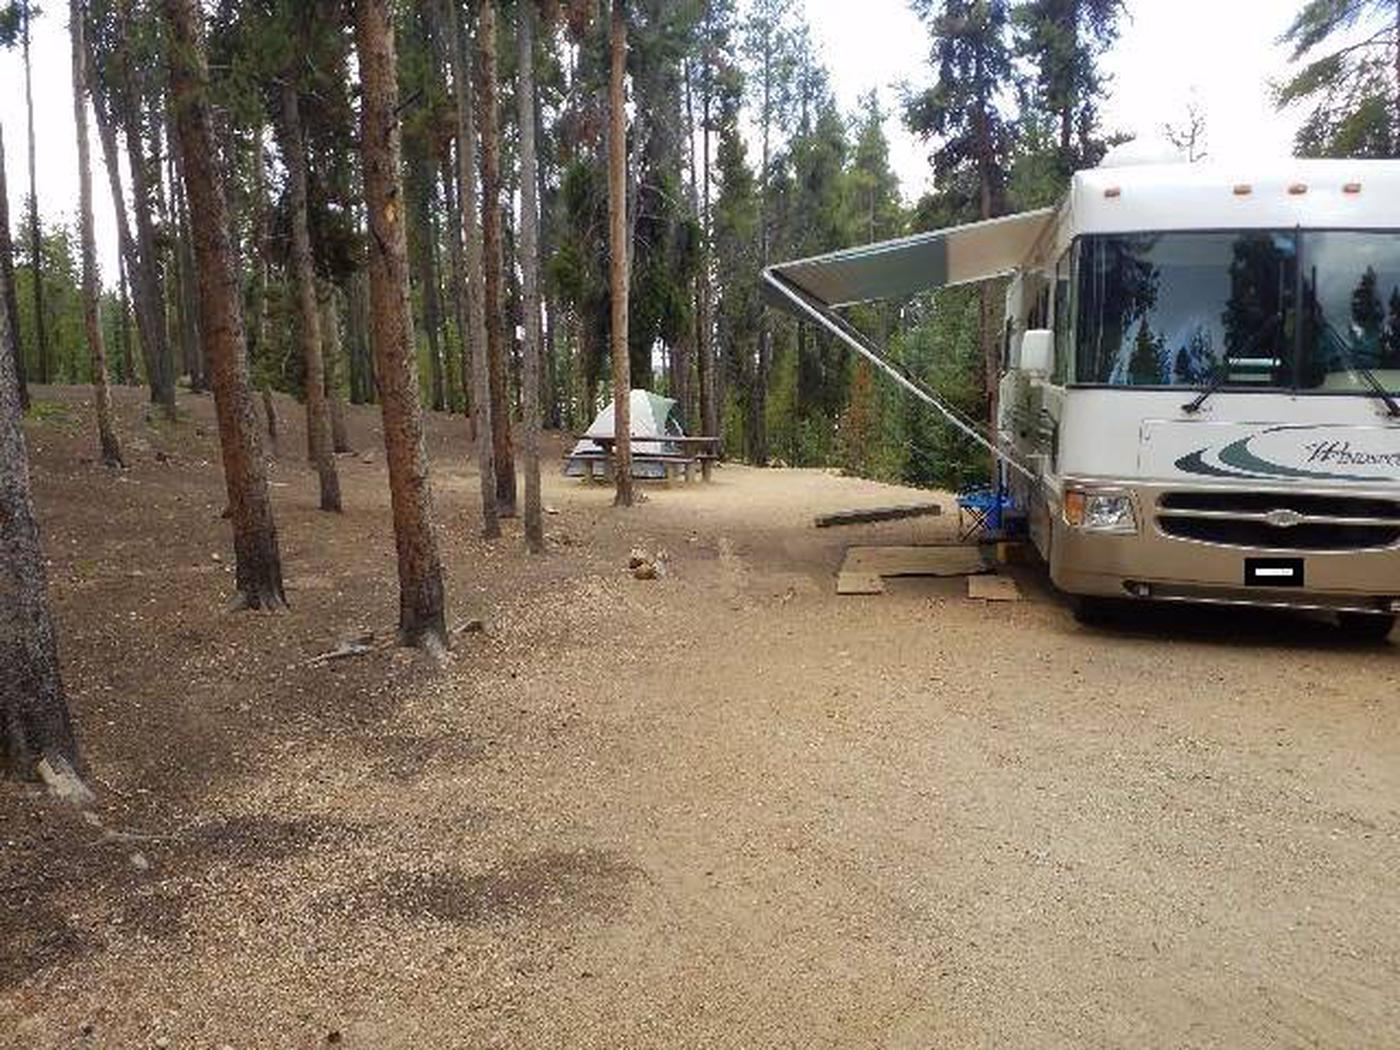 Baby Doe Campground, Site 2 parking